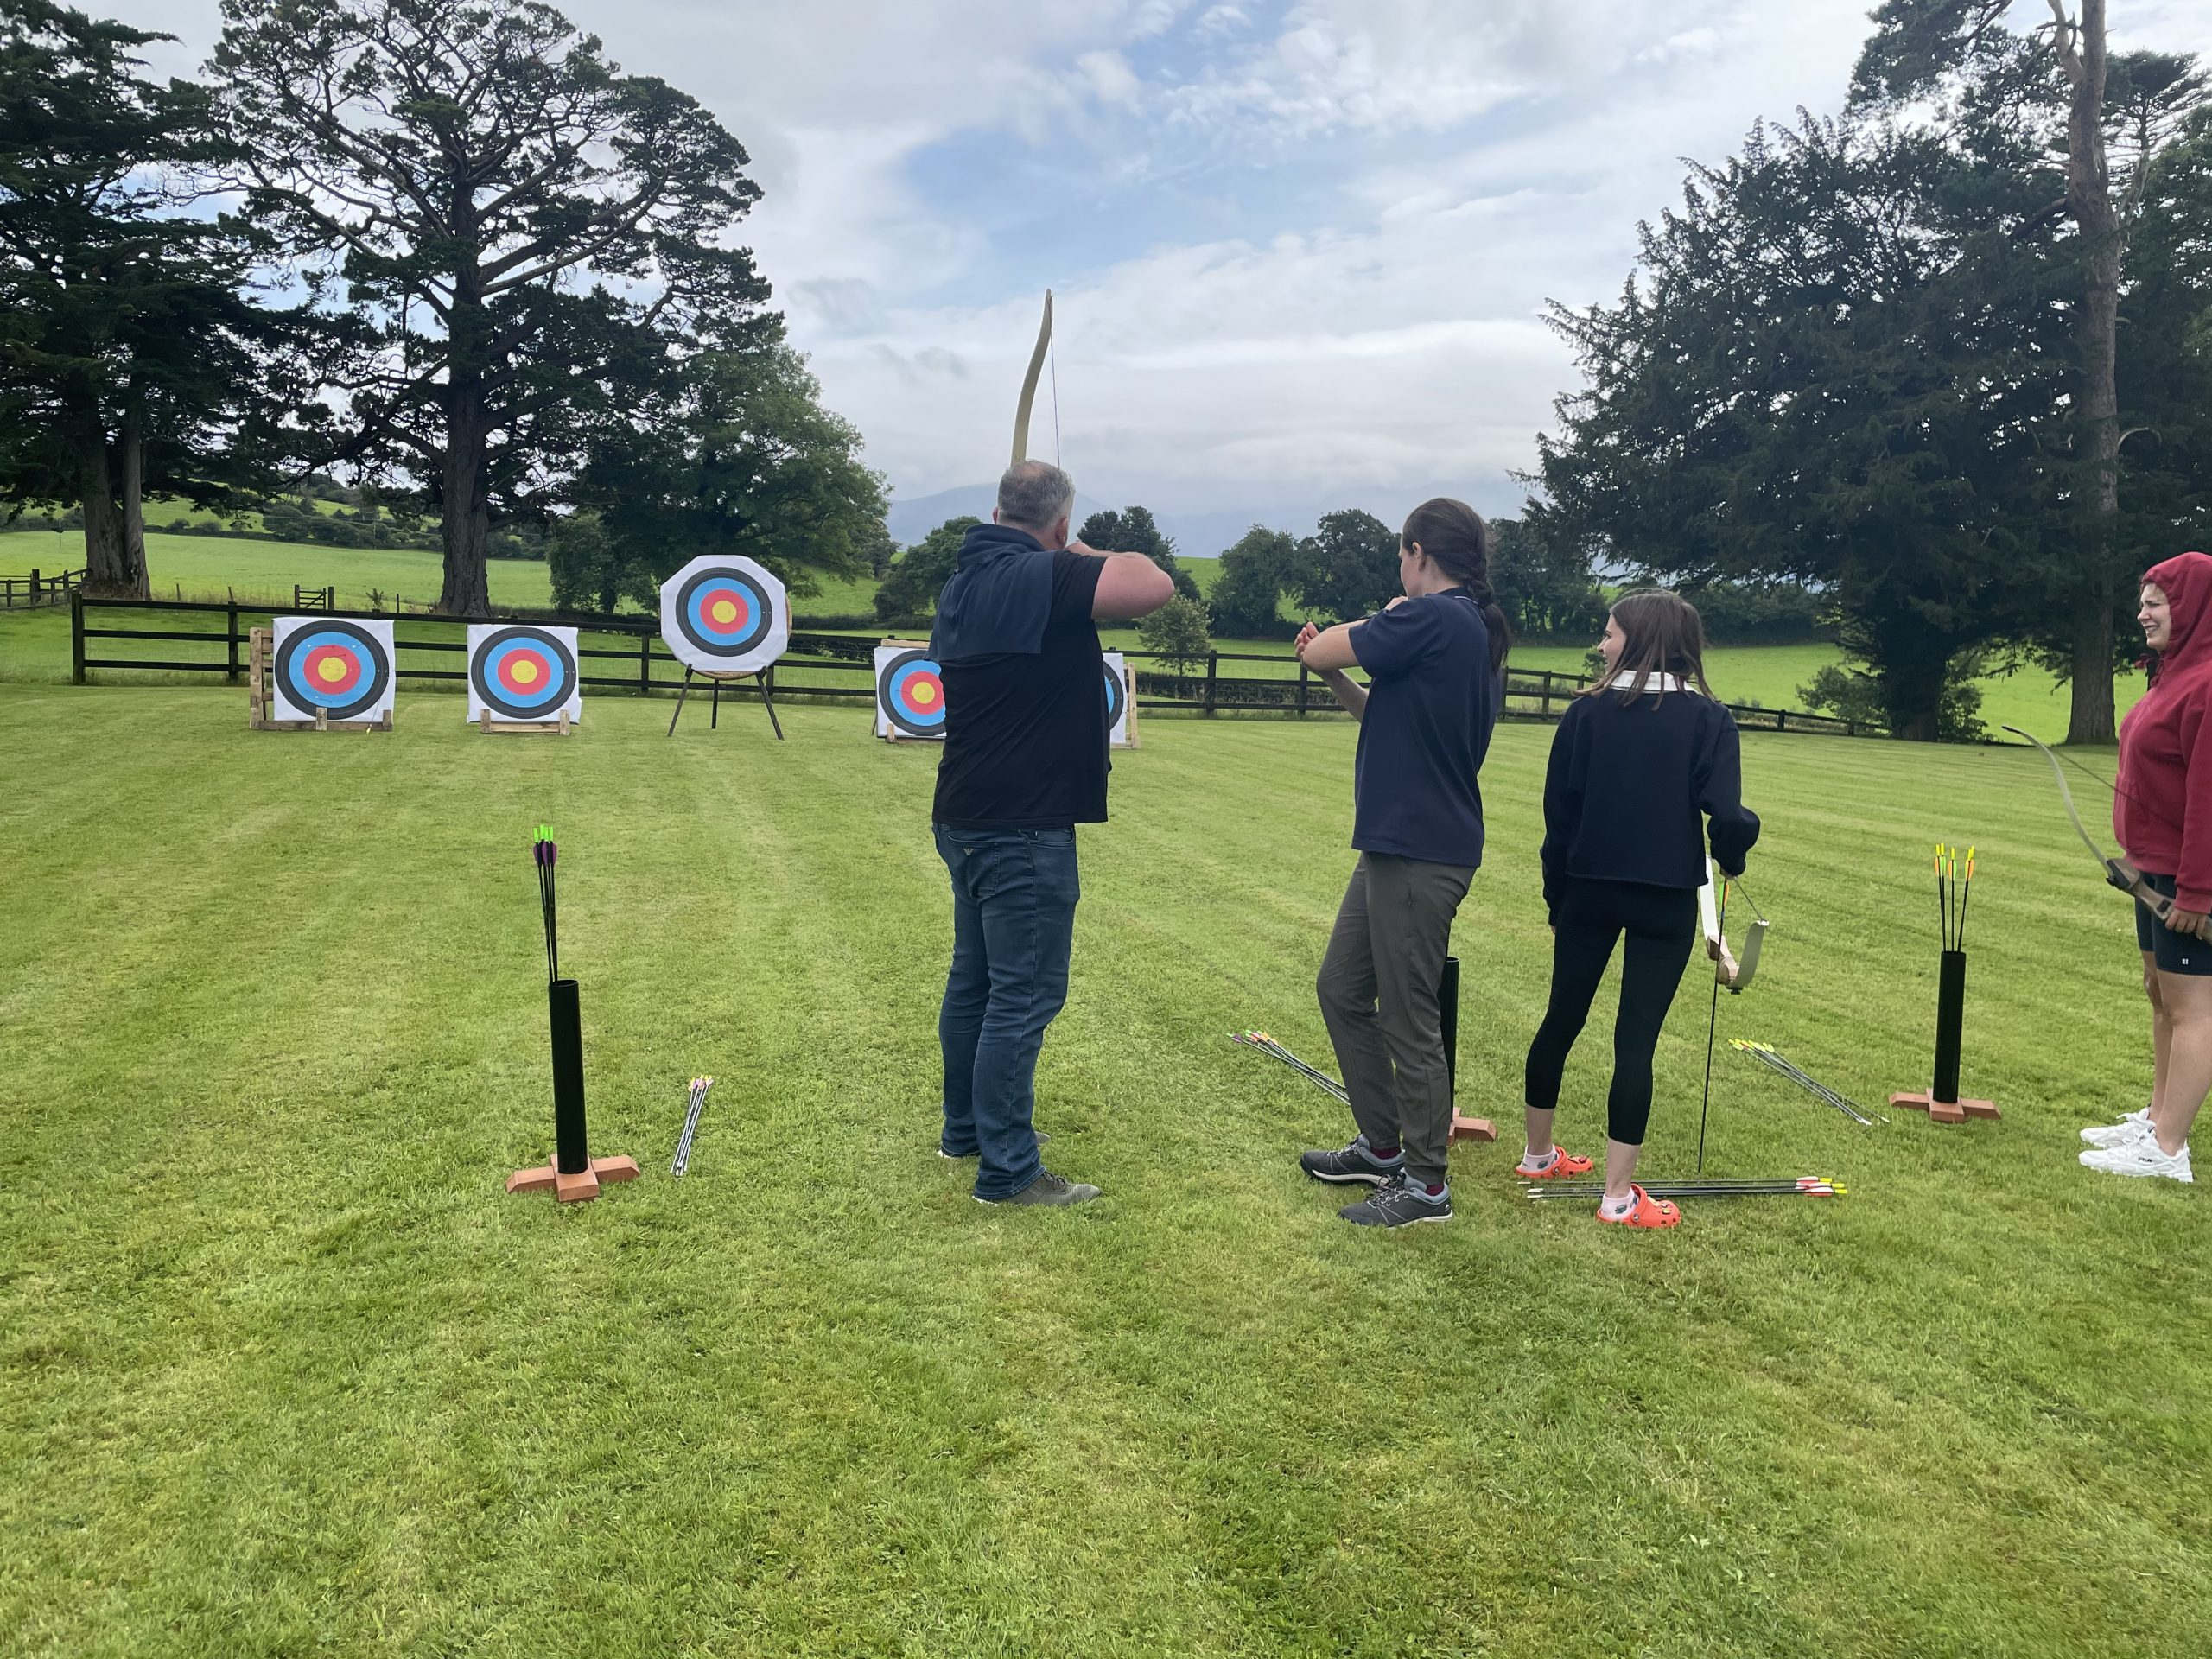 Archery at Coolclogher House